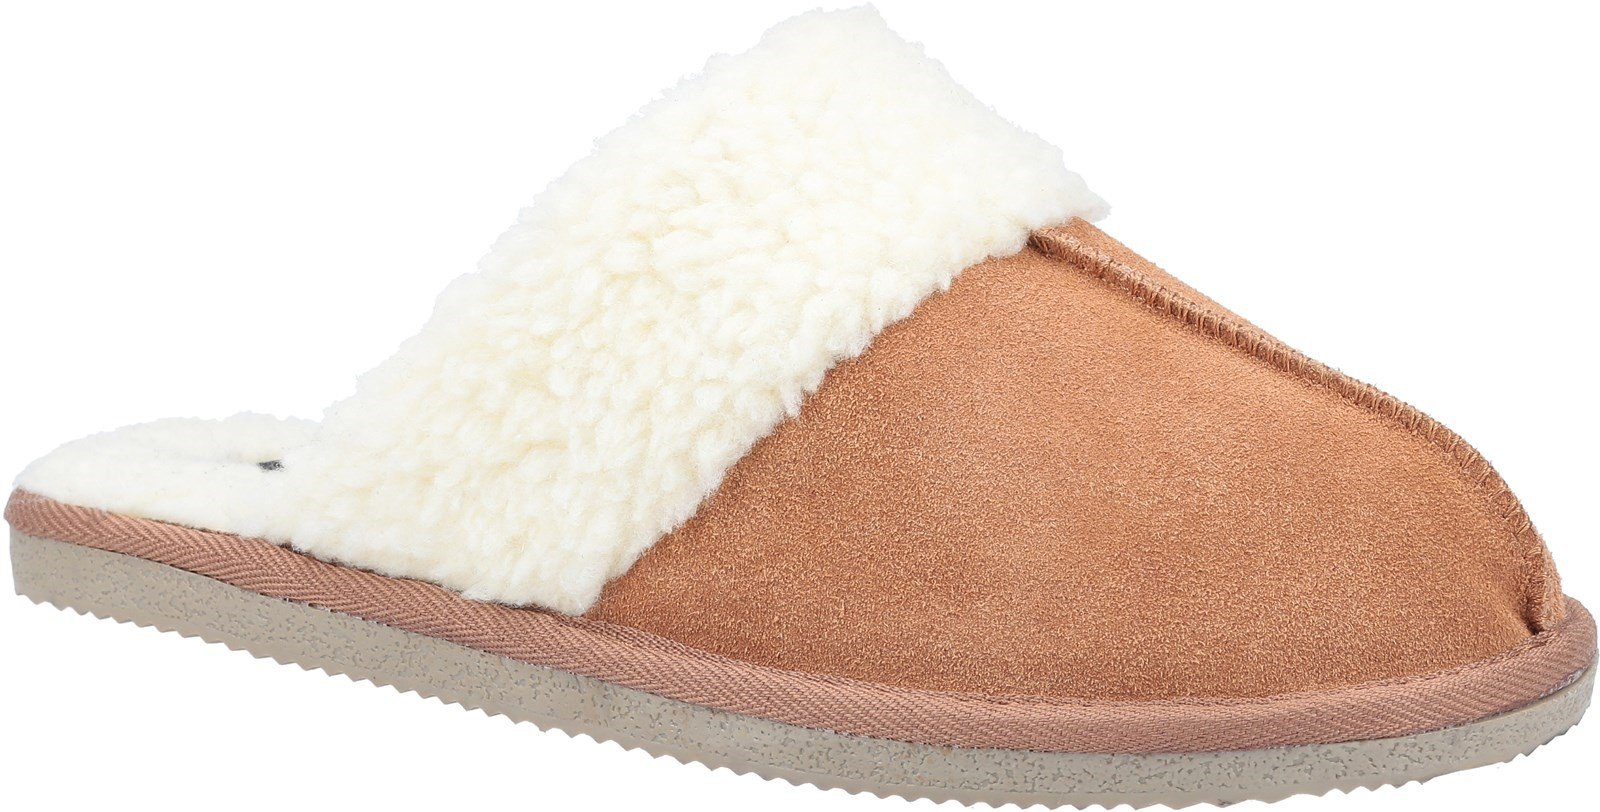 Hush Puppies Women's Arianna Mule Slippers Various Colours 31183 - Tan 3